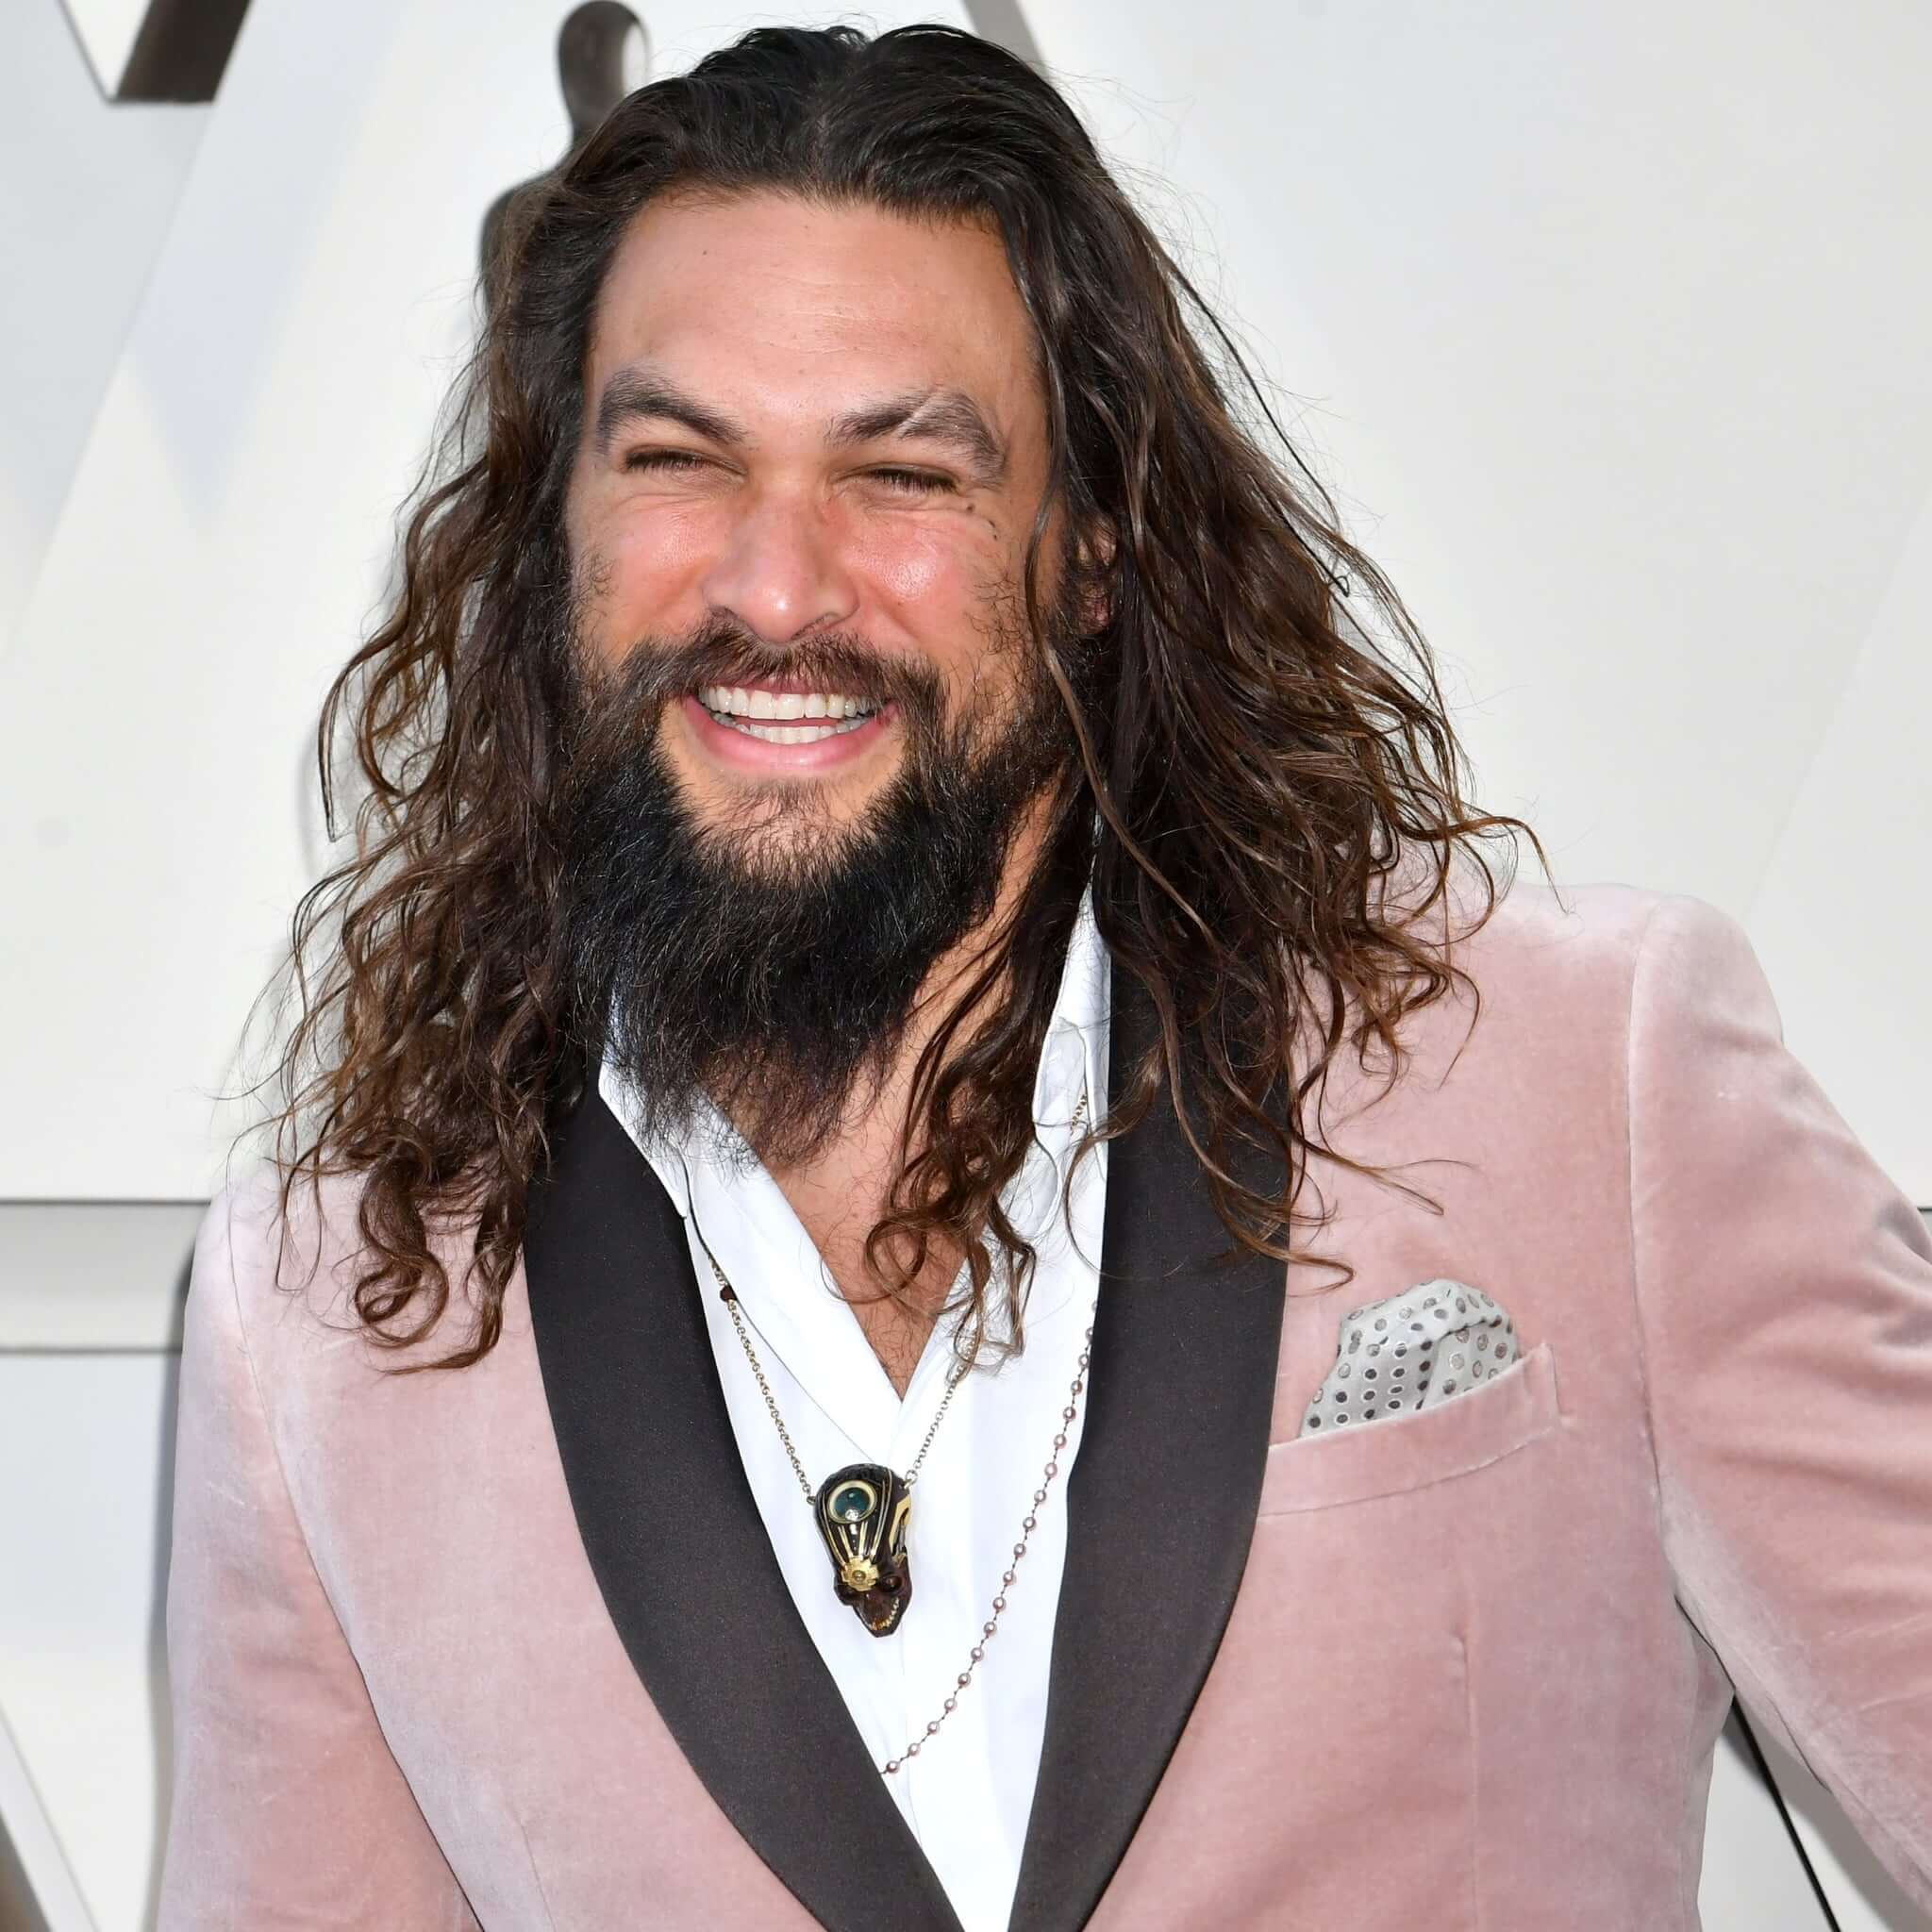 Jason Momoa is set to voice Frosty the Snowman